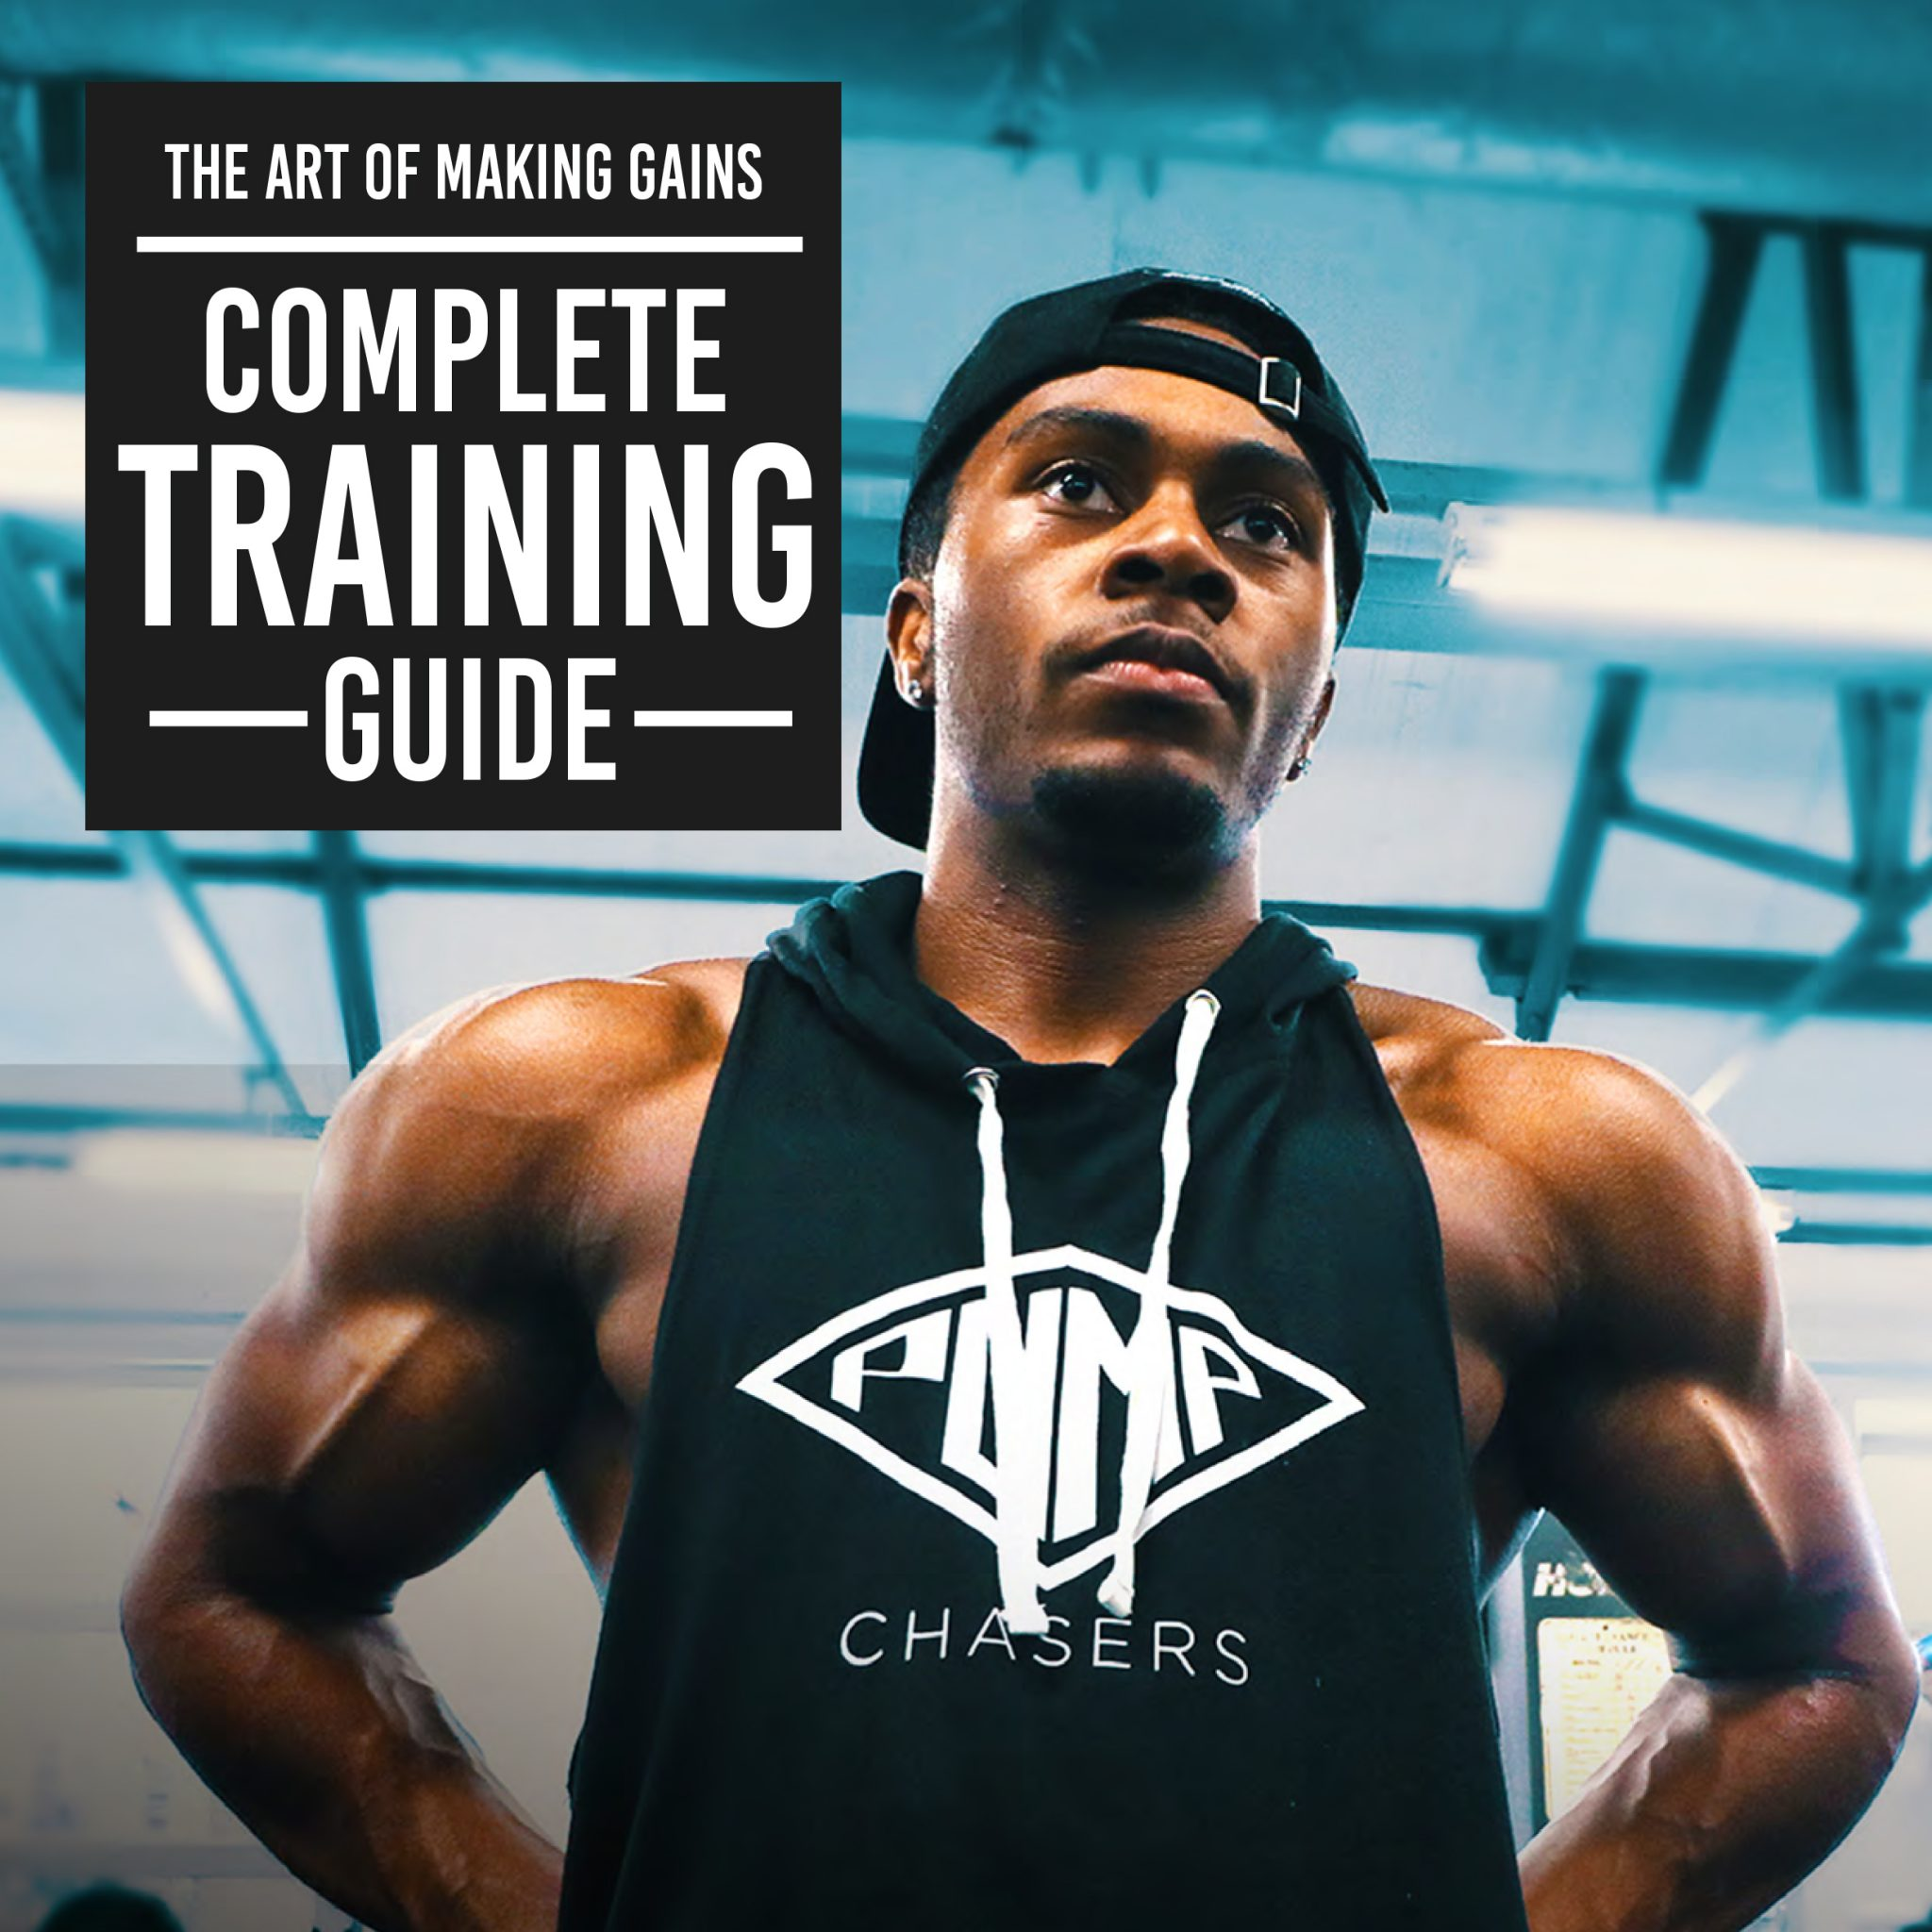 The Complete Training Guide Thumbnail